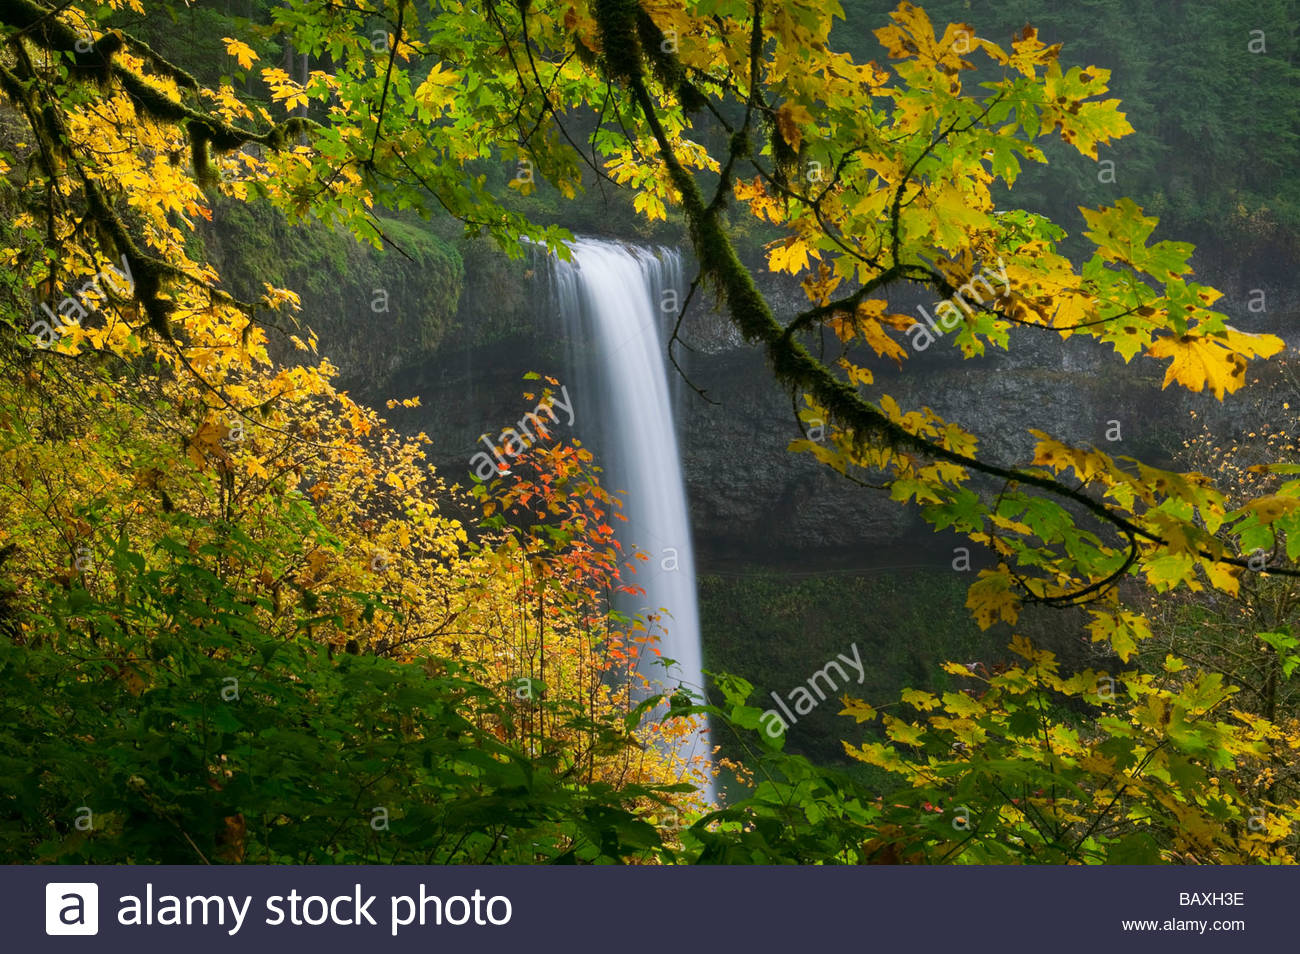 South Silver Falls, one of several scenic waterfalls in Silver Falls State Park, Oregon, is surrounded by colorful - Stock Image